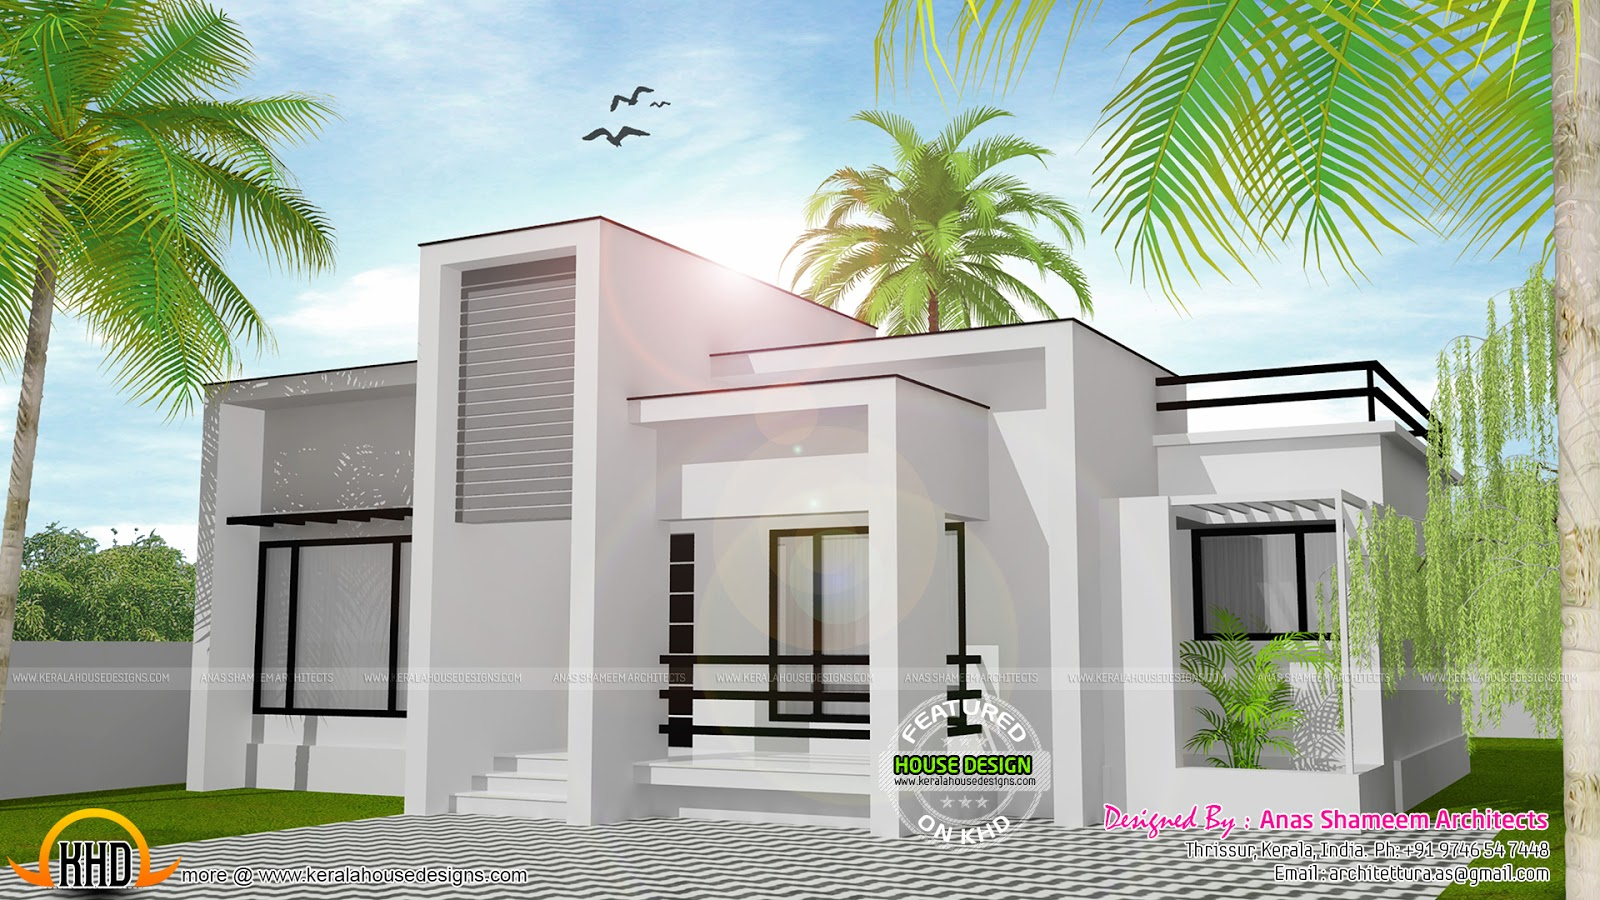 978 sq ft flat roof single floor home kerala home design and floor plans Home design and cost